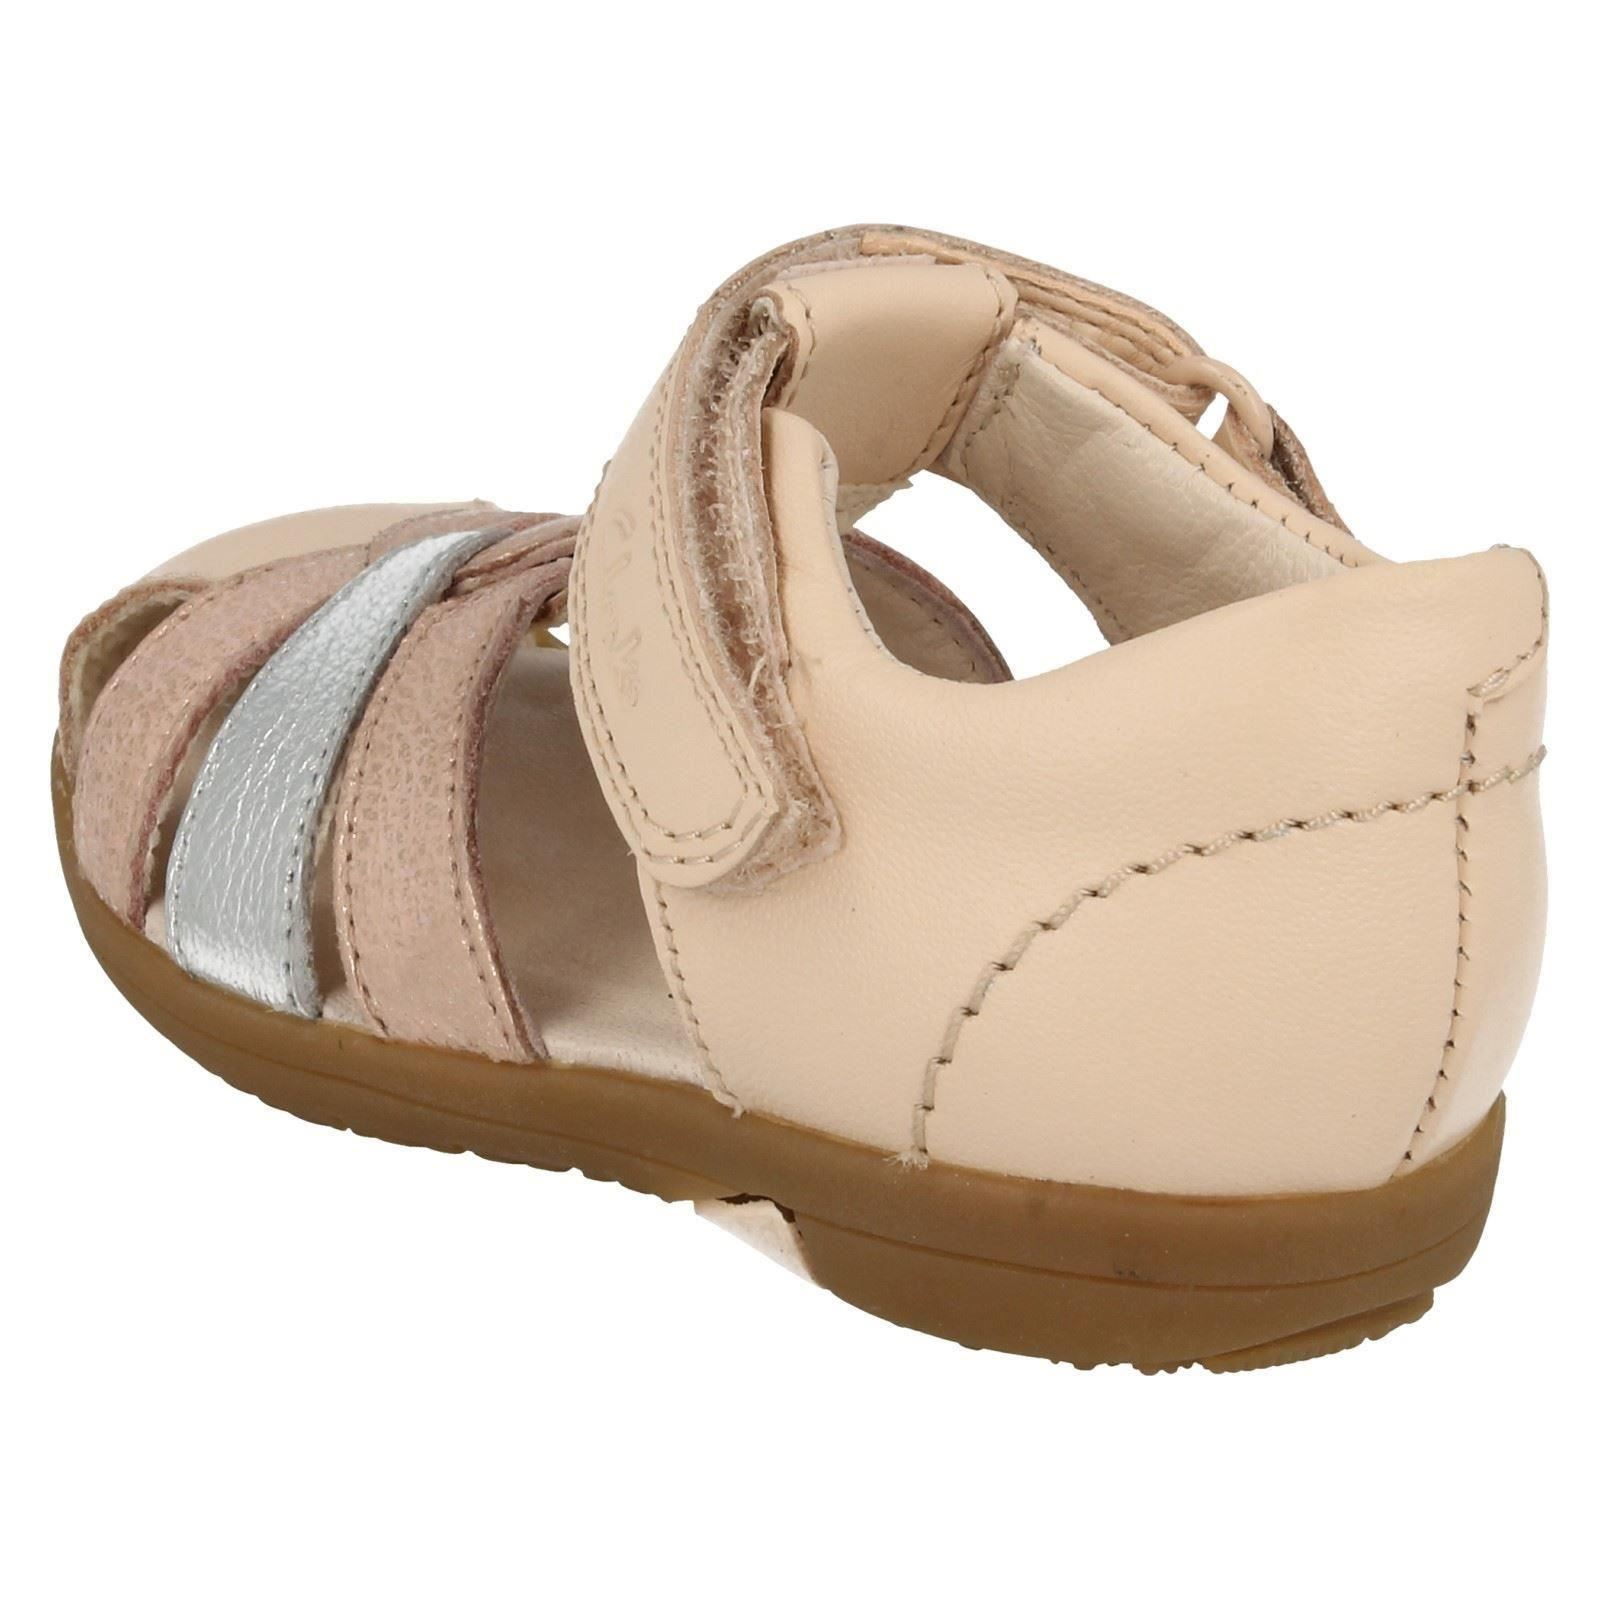 901ad375378 Girls Clarks First Shoes Closed Toe Summer Sandals  Softly Mae